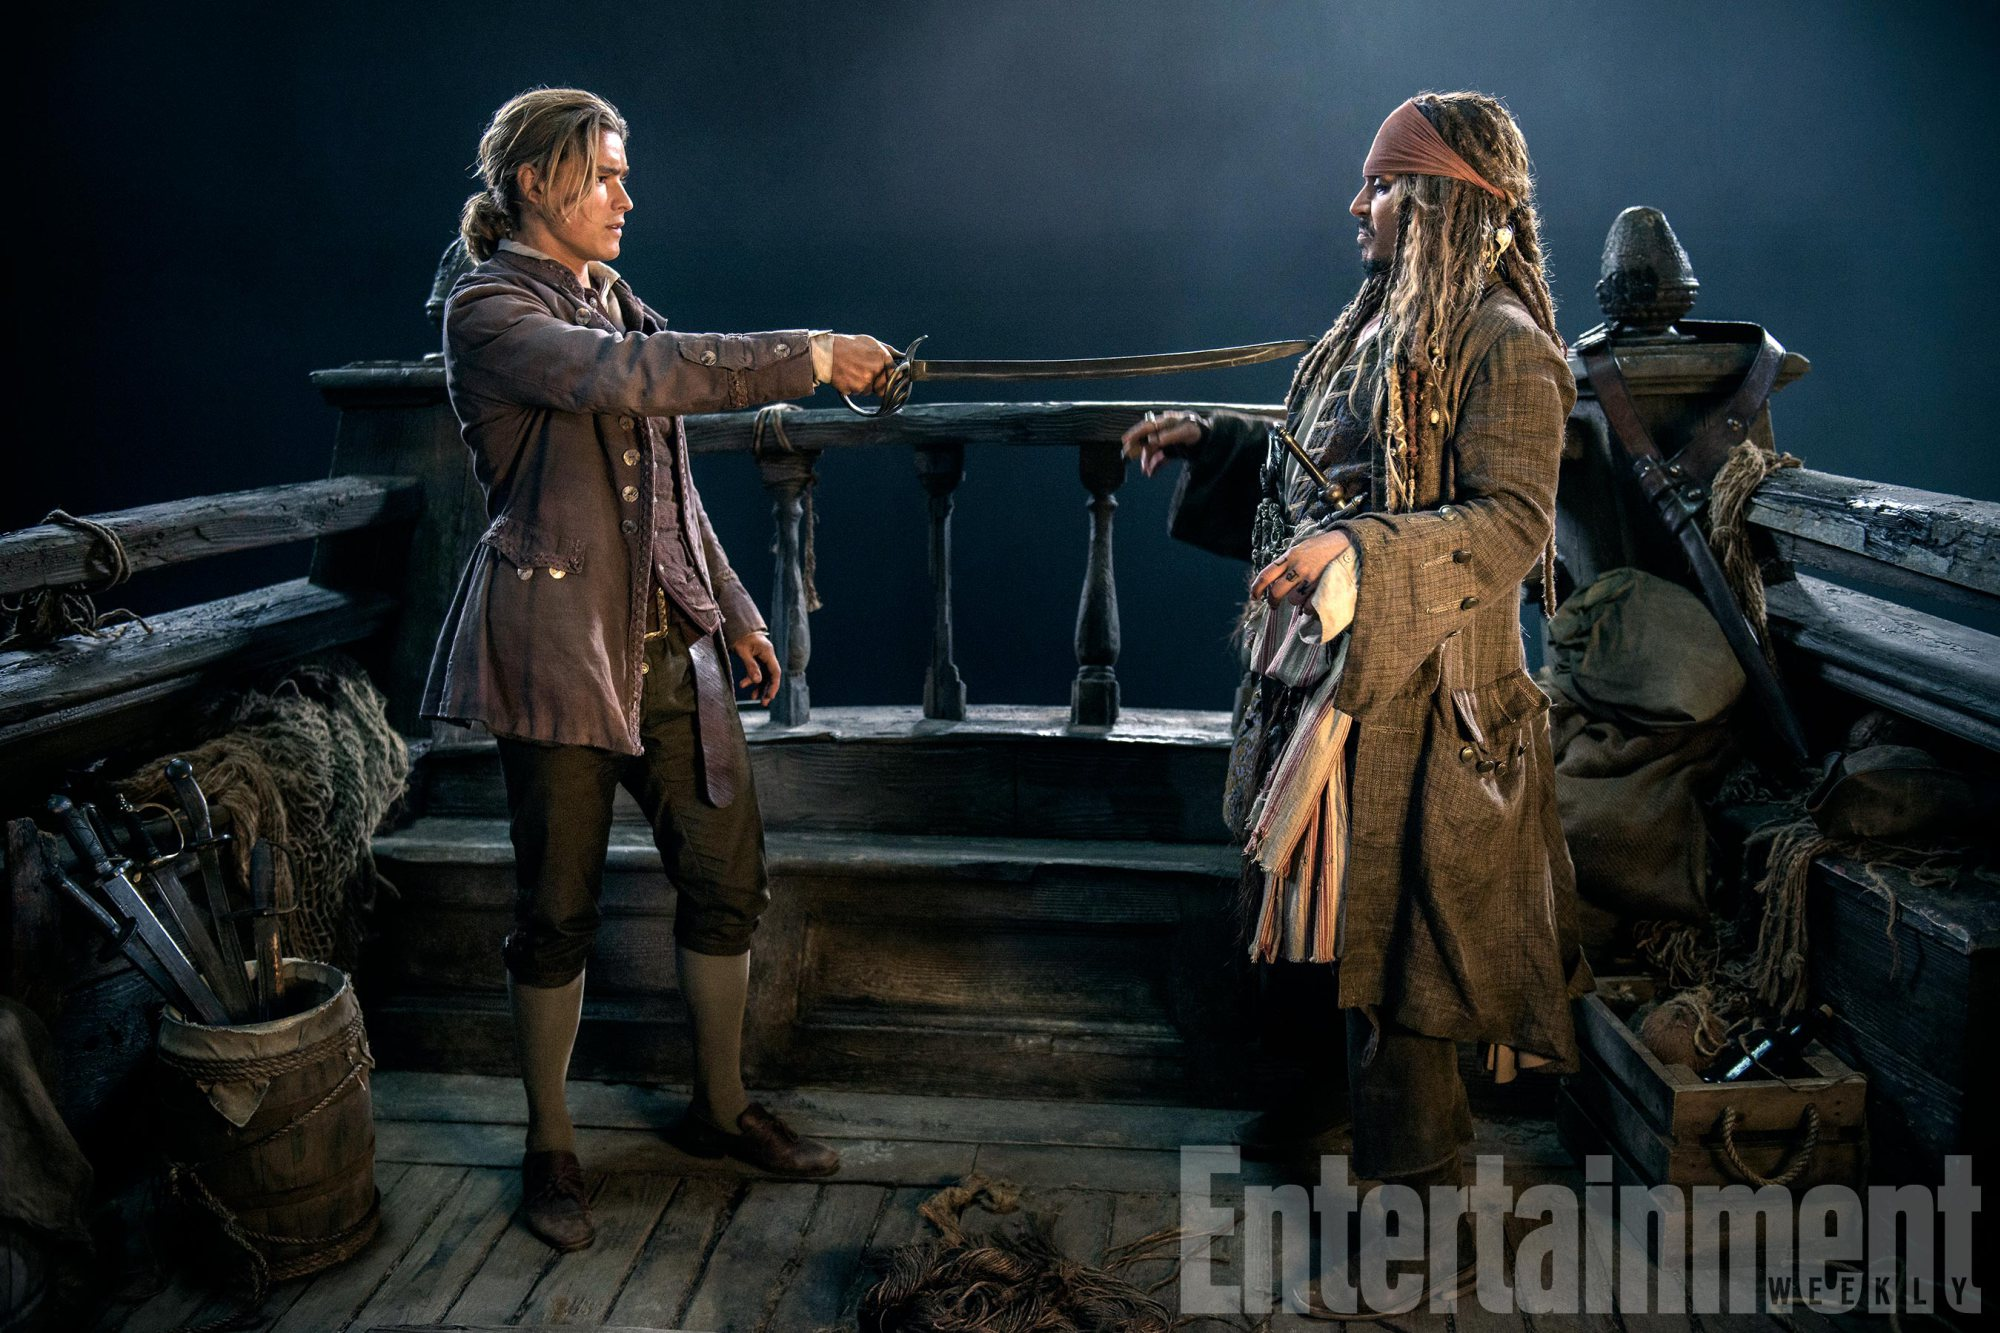 Jack Sparrow Skates On Thin Ice In Another Image For Pirates Of The Caribbean: Dead Men Tell No Tales